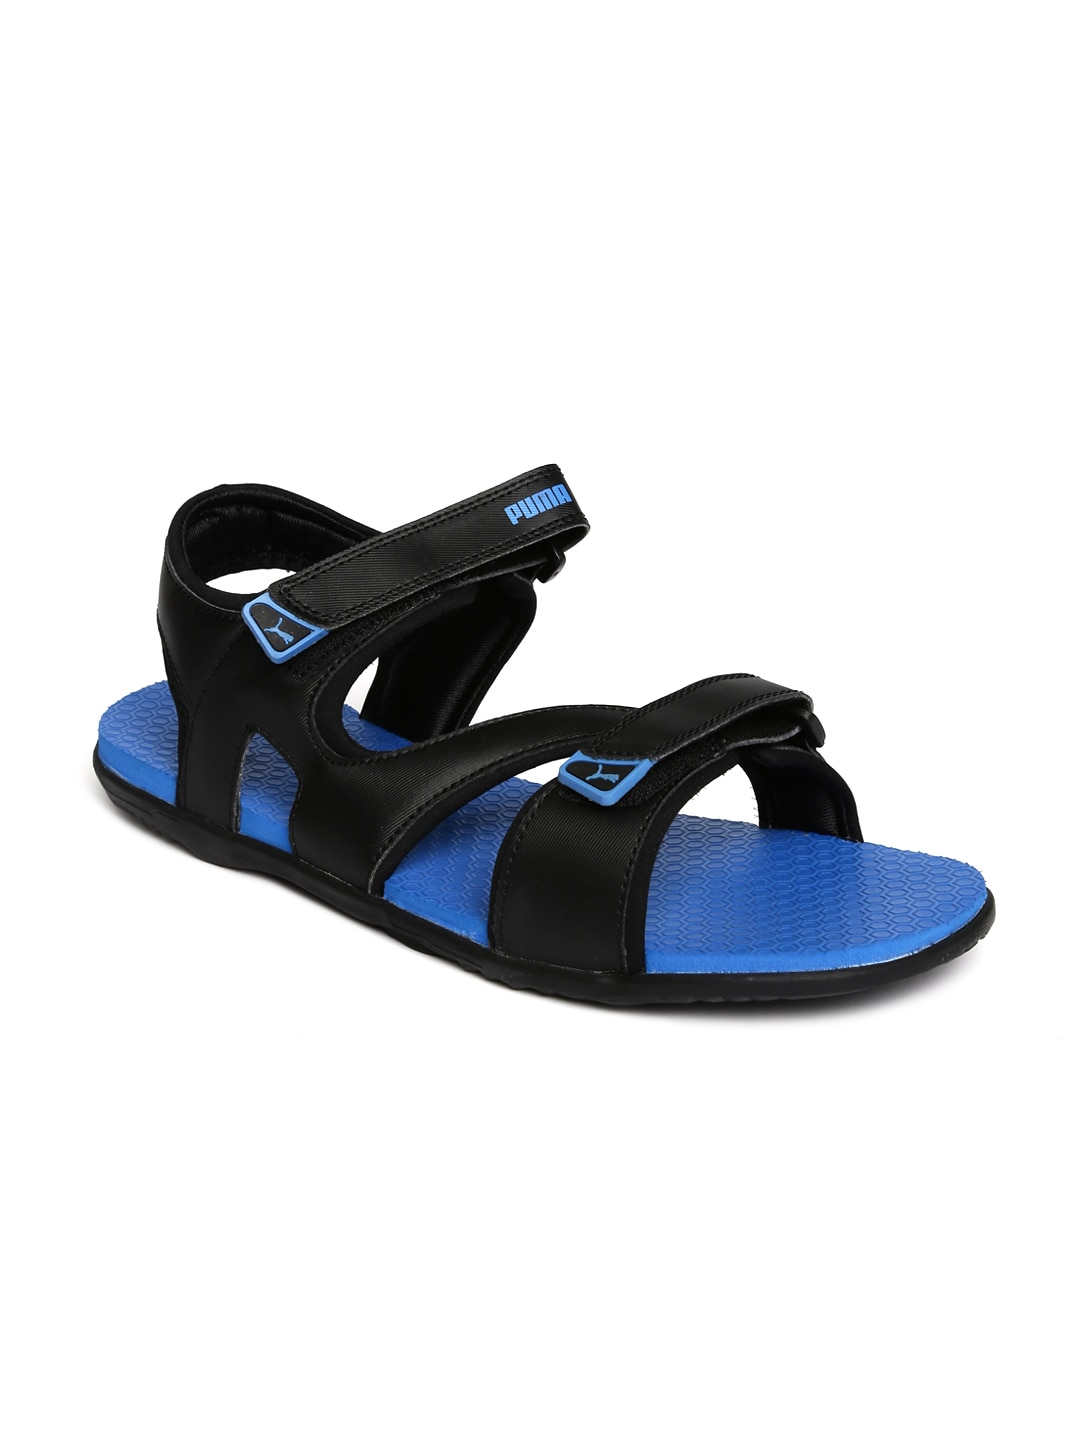 Puma Sandal - Buy Puma Sandal Online in India  7000d509665c